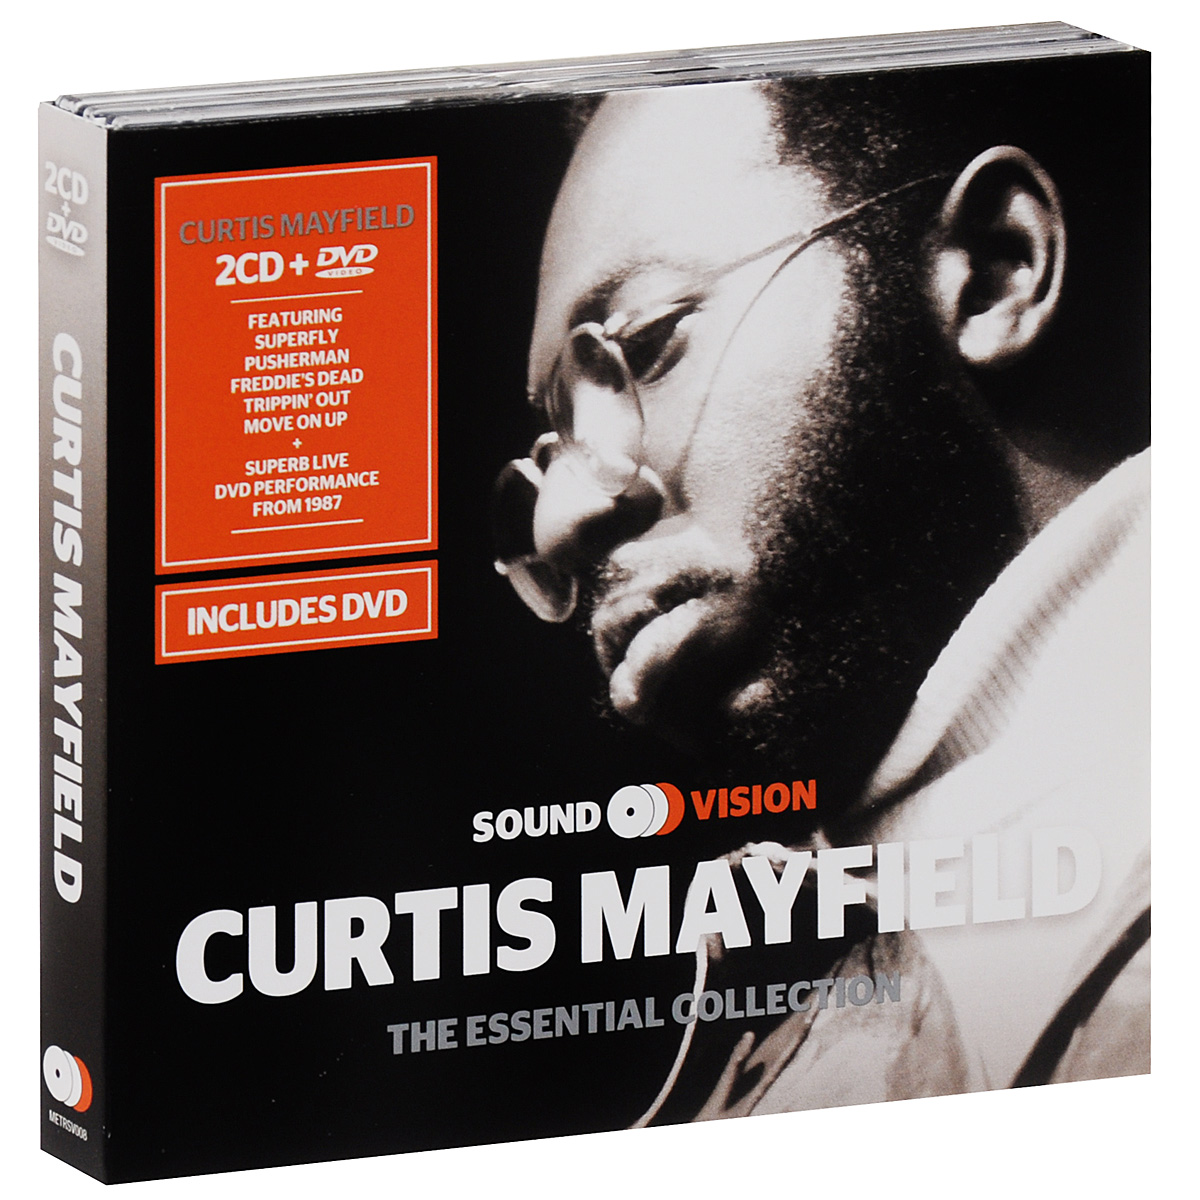 Bonus DVD содержит:  Curtis may field was one of the dominant figures of soul music for three decades. This performance findsCurtis on fine form. His distinctive falsetto vocals and fine guitar playing are in evidence on a classic set thatincludes many highlights from his illustrious career.01. Introduction02. Ice 9 (Instrumental) 03. Back To The World04. It's All Right05. Gypsy Woman 06. Freddie's Dead 07. Pusherman08. We Got To Have Peace 09. We've Only Just Begun10. People Get Ready11. Move On Up12. (Don't Worry) If There? A Hell Below We're All Going To Go13. When Seasons Change Picture Format: PAL 4x3 Format: DVD-5Time: 64 mins. Color Mode: Color Region Code: 0 (All)Language And Audio Content: English / PCM Sterio  Subtitles: No